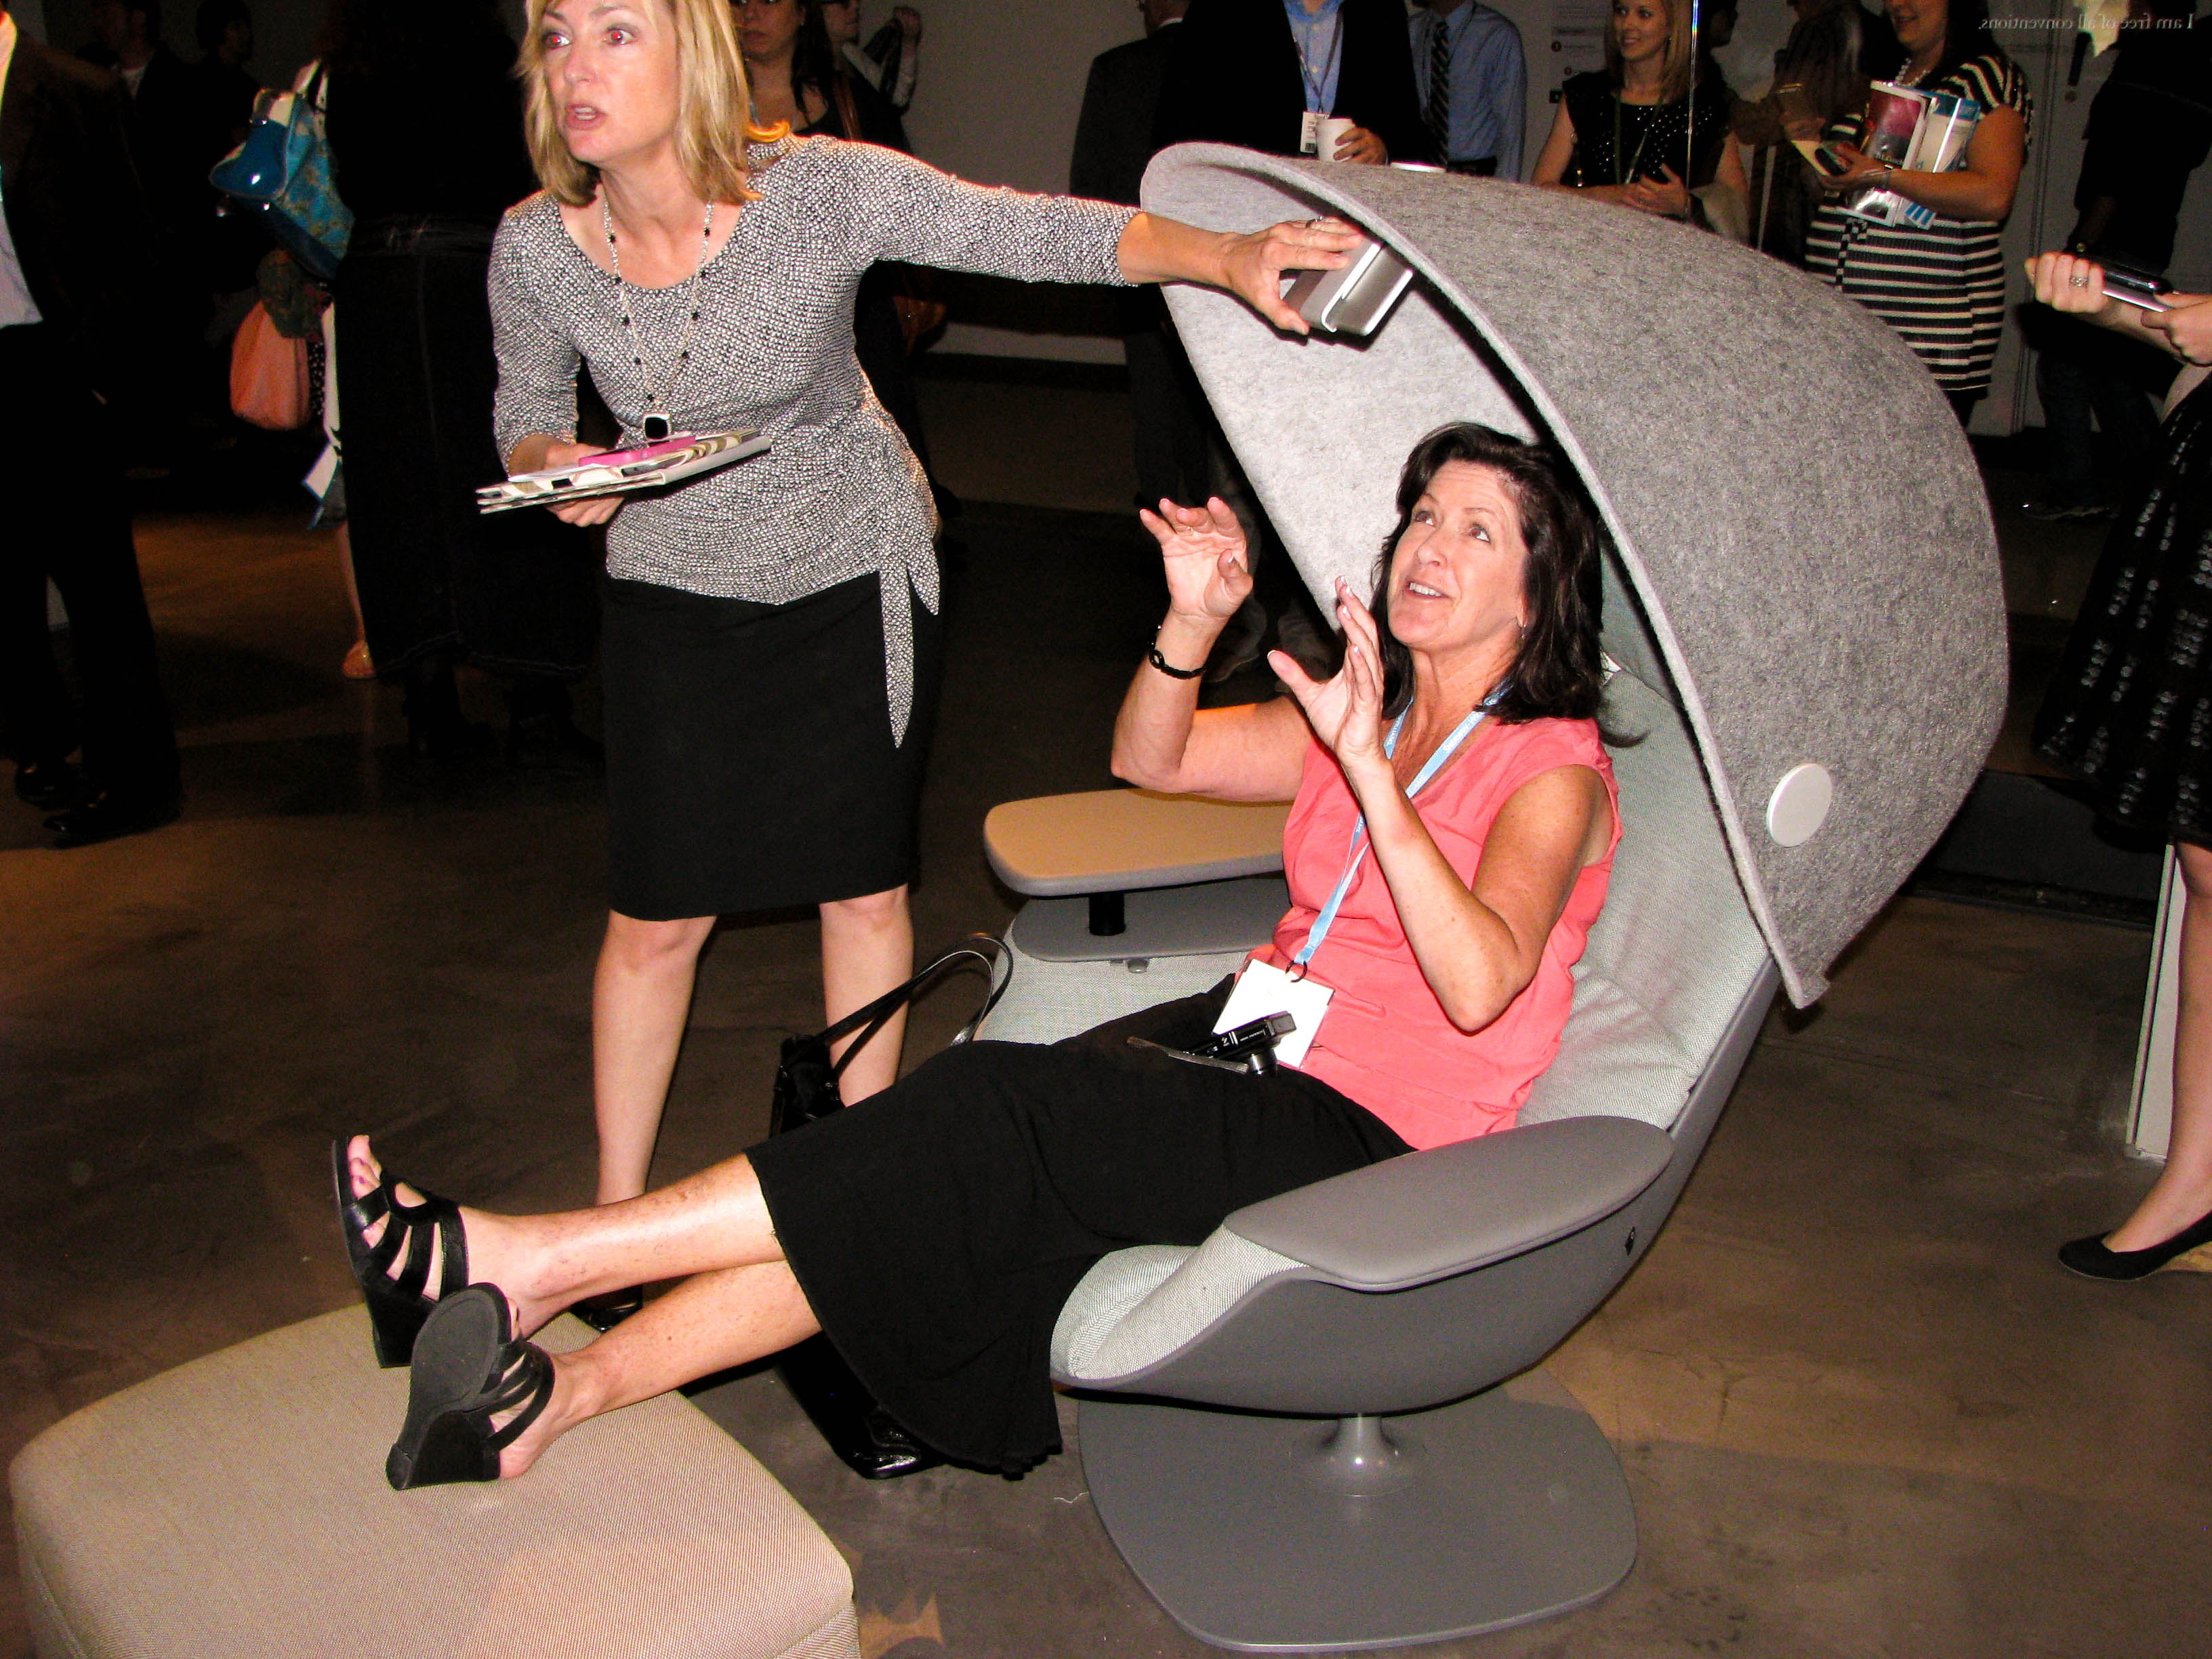 And here is Amy checking out the innovative technology integrated into this chair!